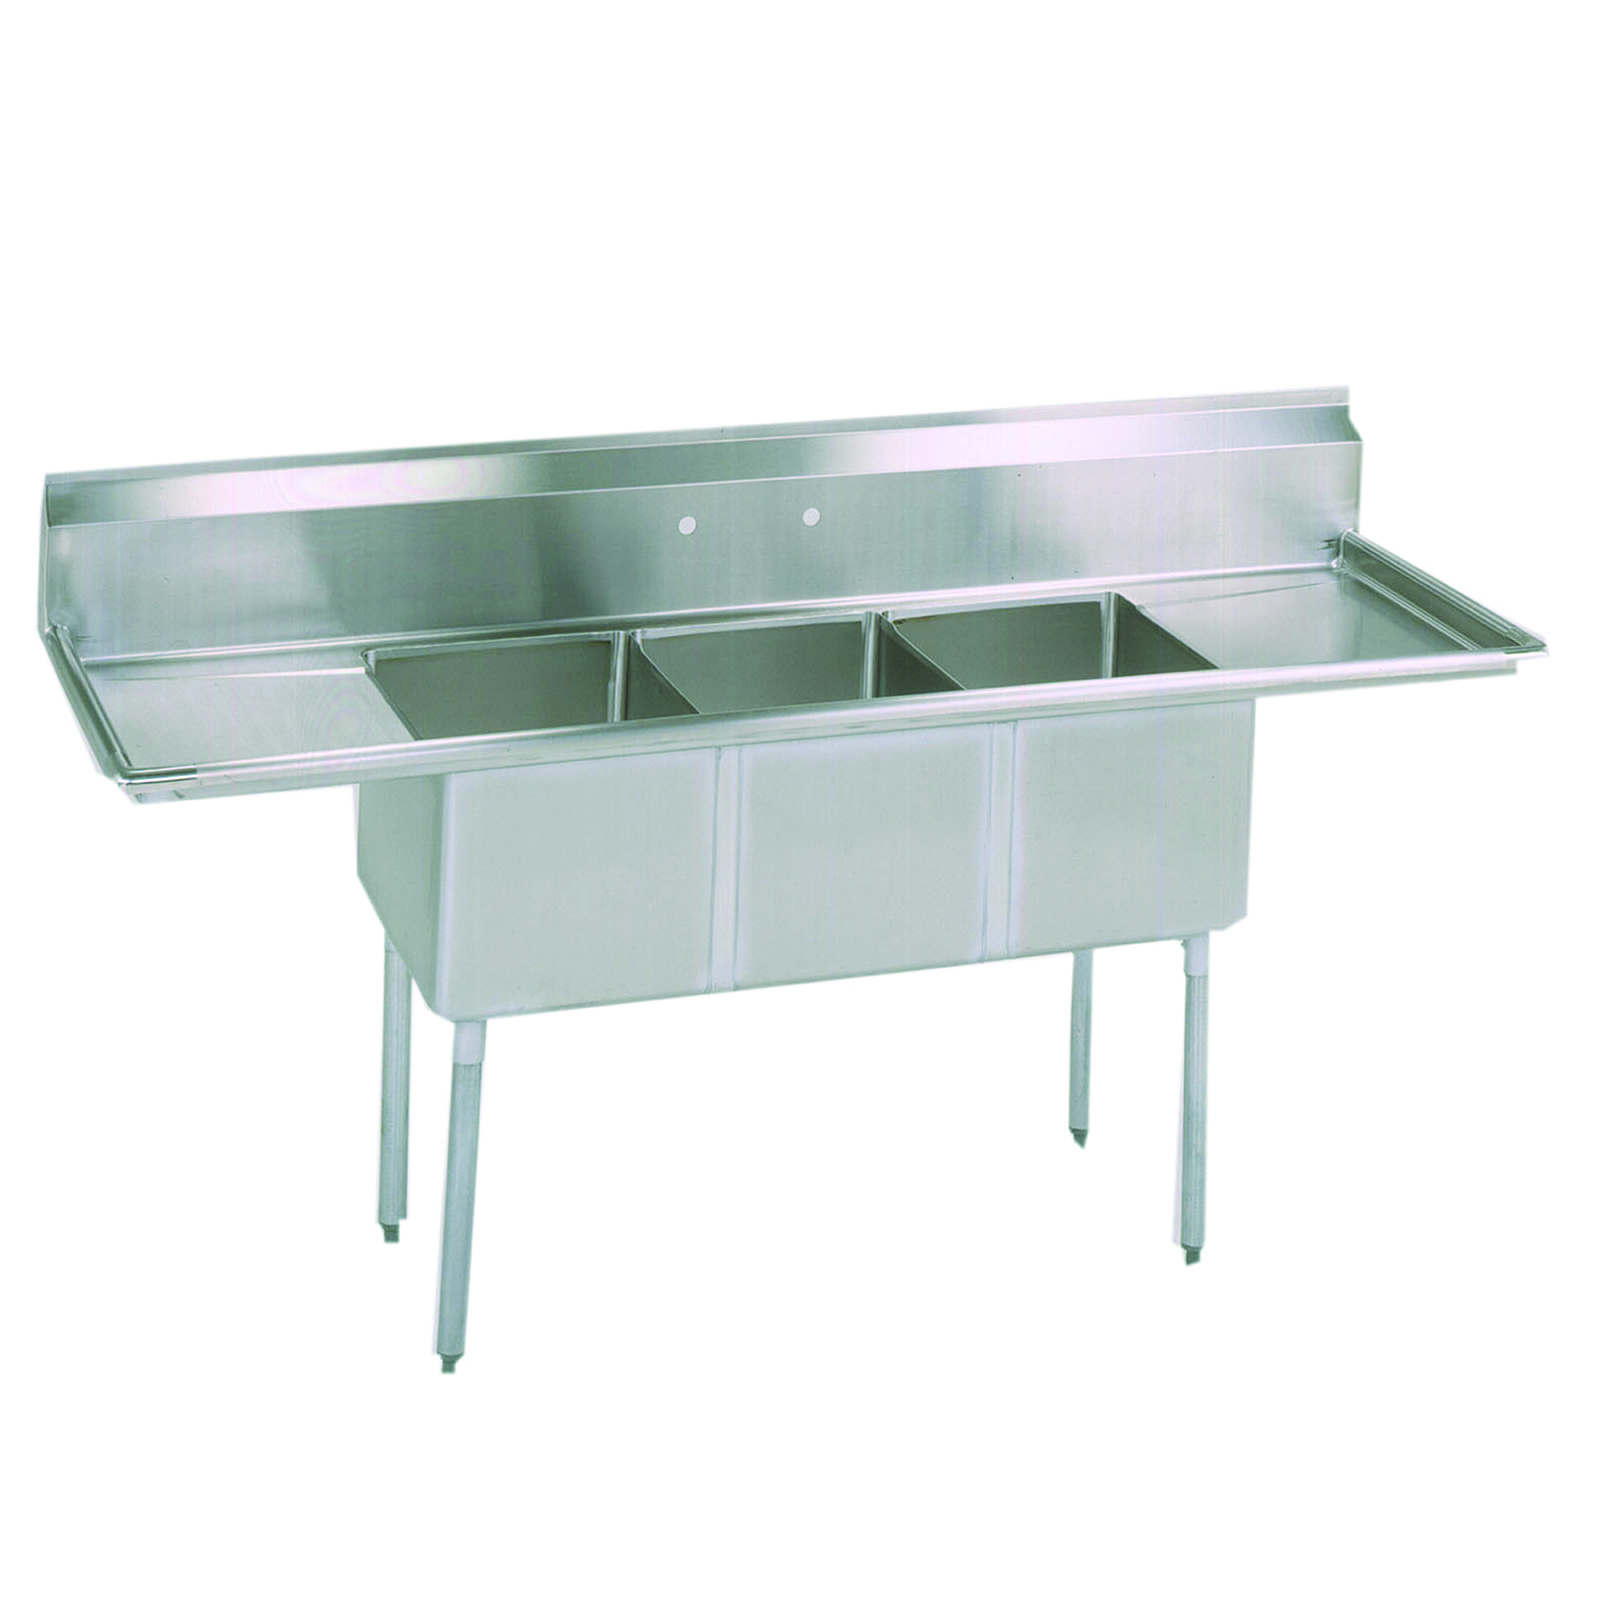 BK Resources BKS-3-18-12-24TS sink, (3) three compartment